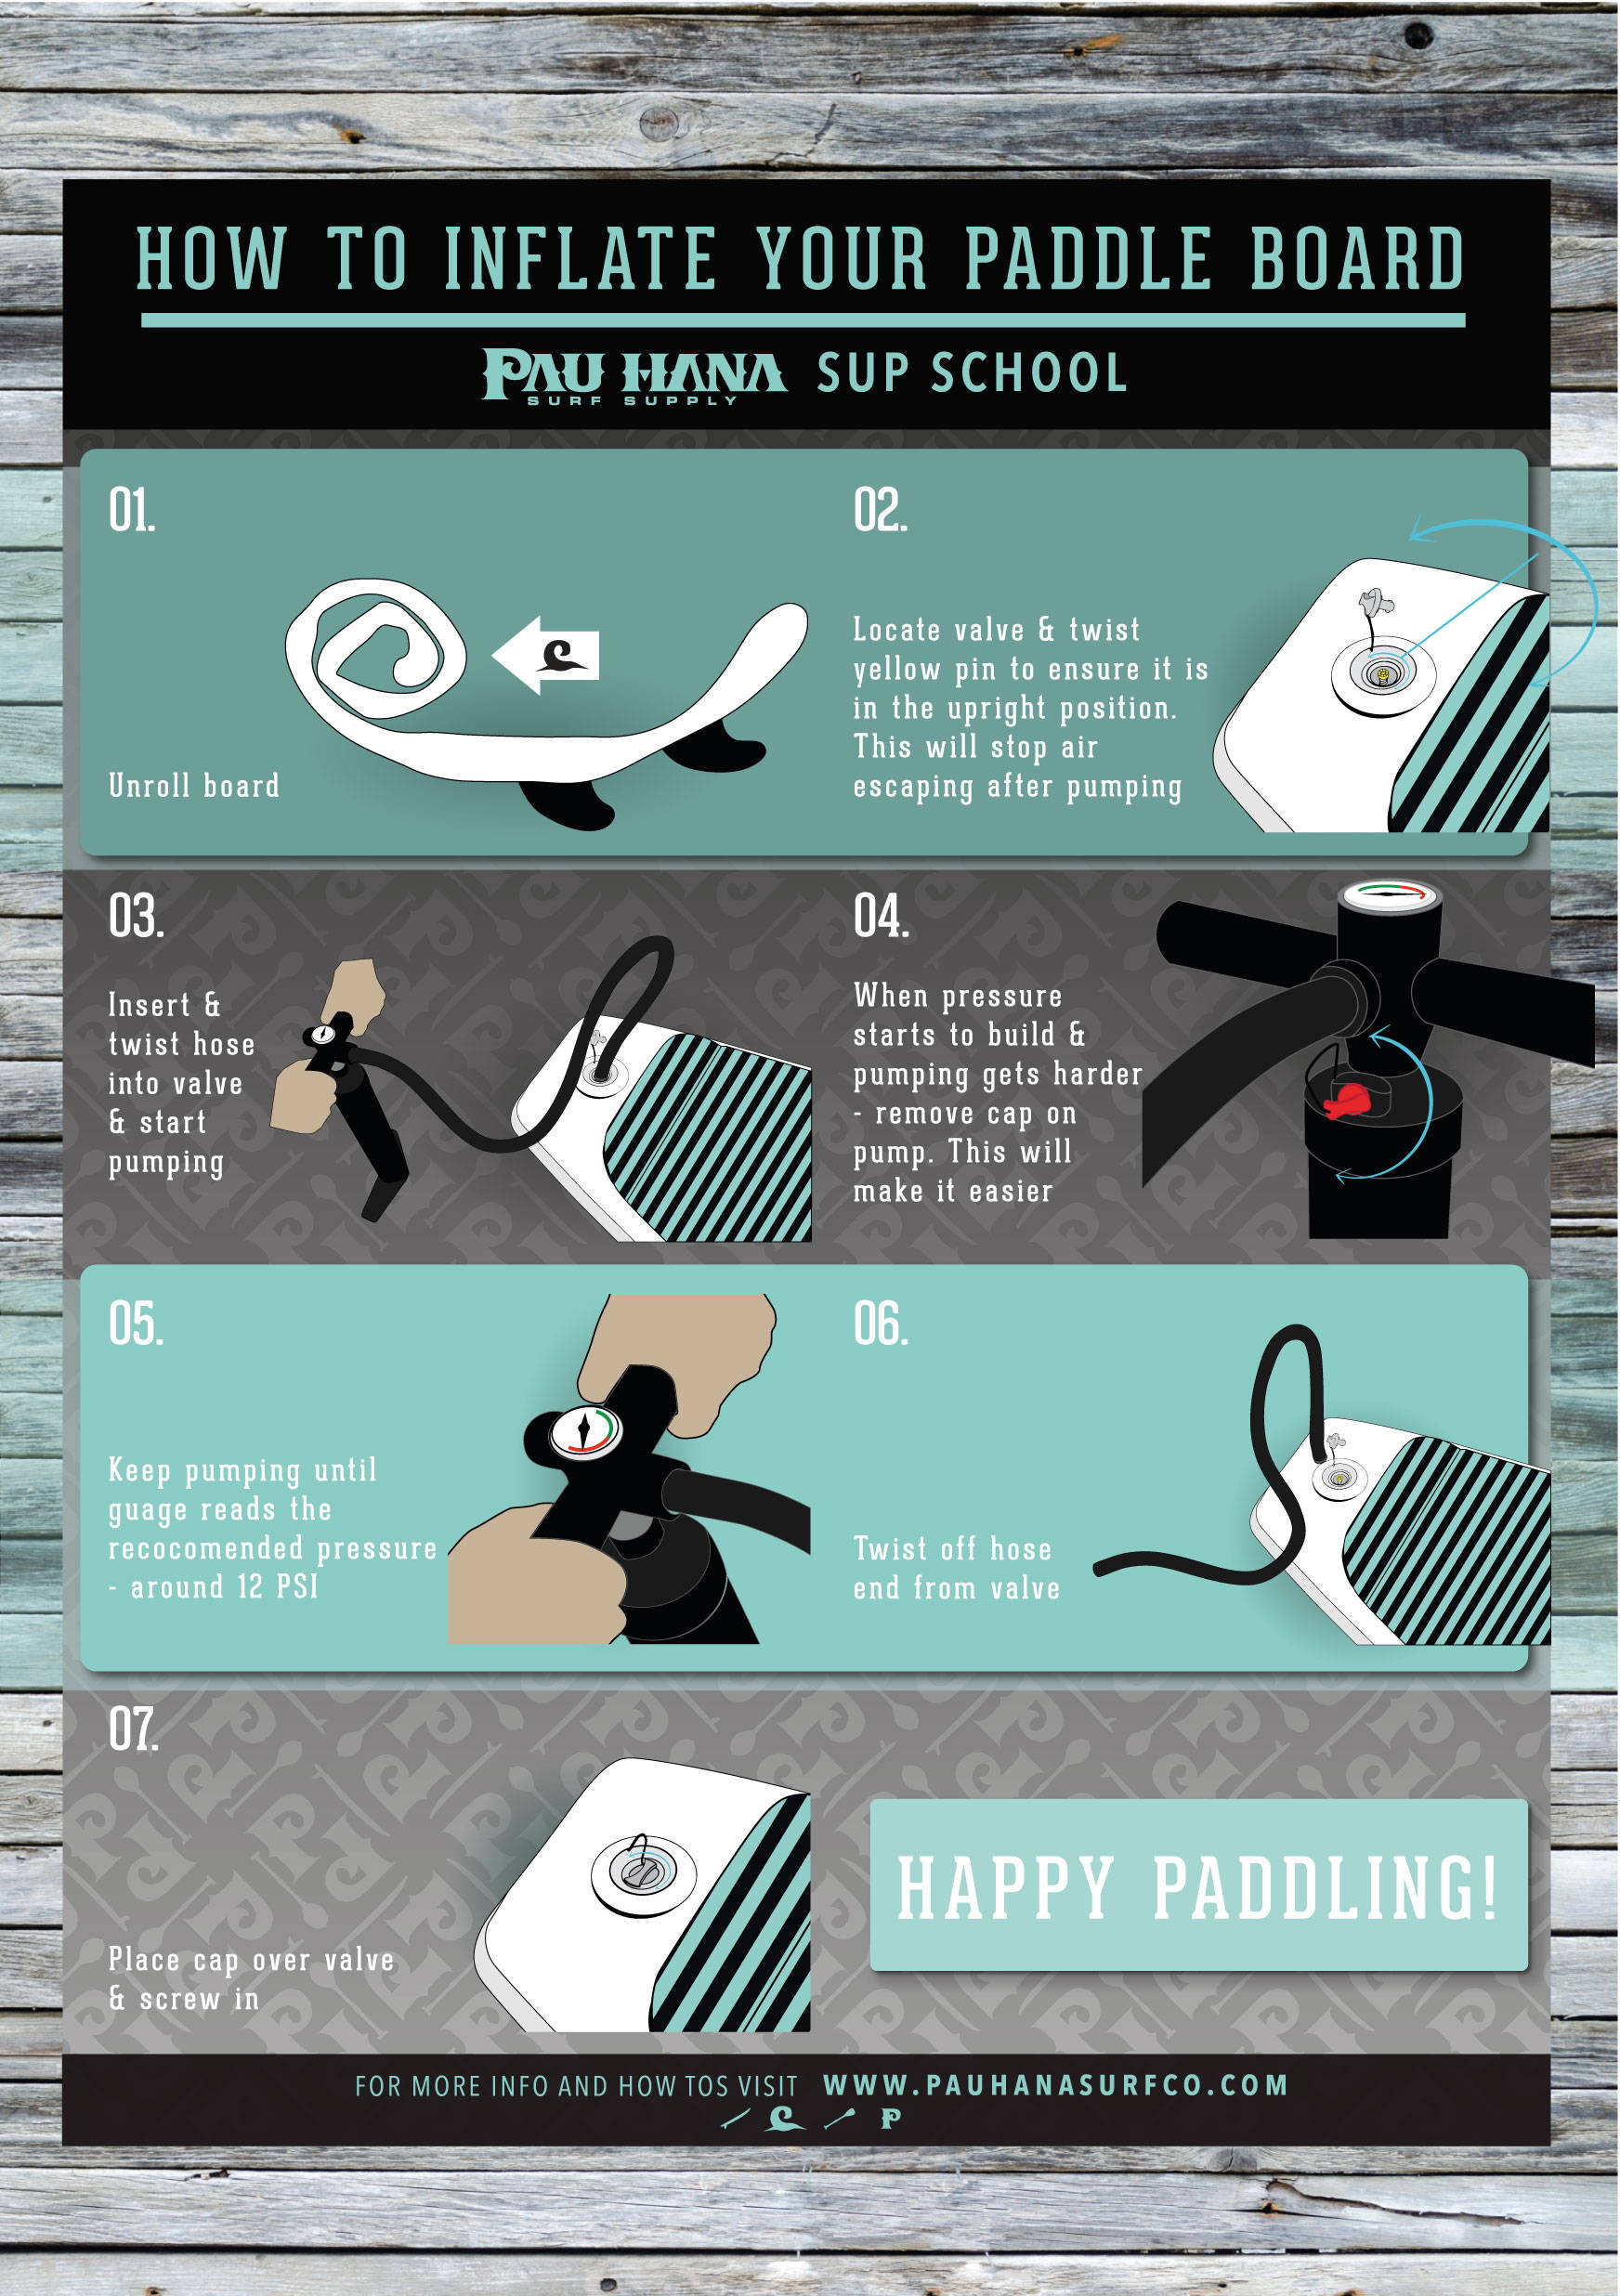 An infographic explaining how to correctly inflate your paddle board.